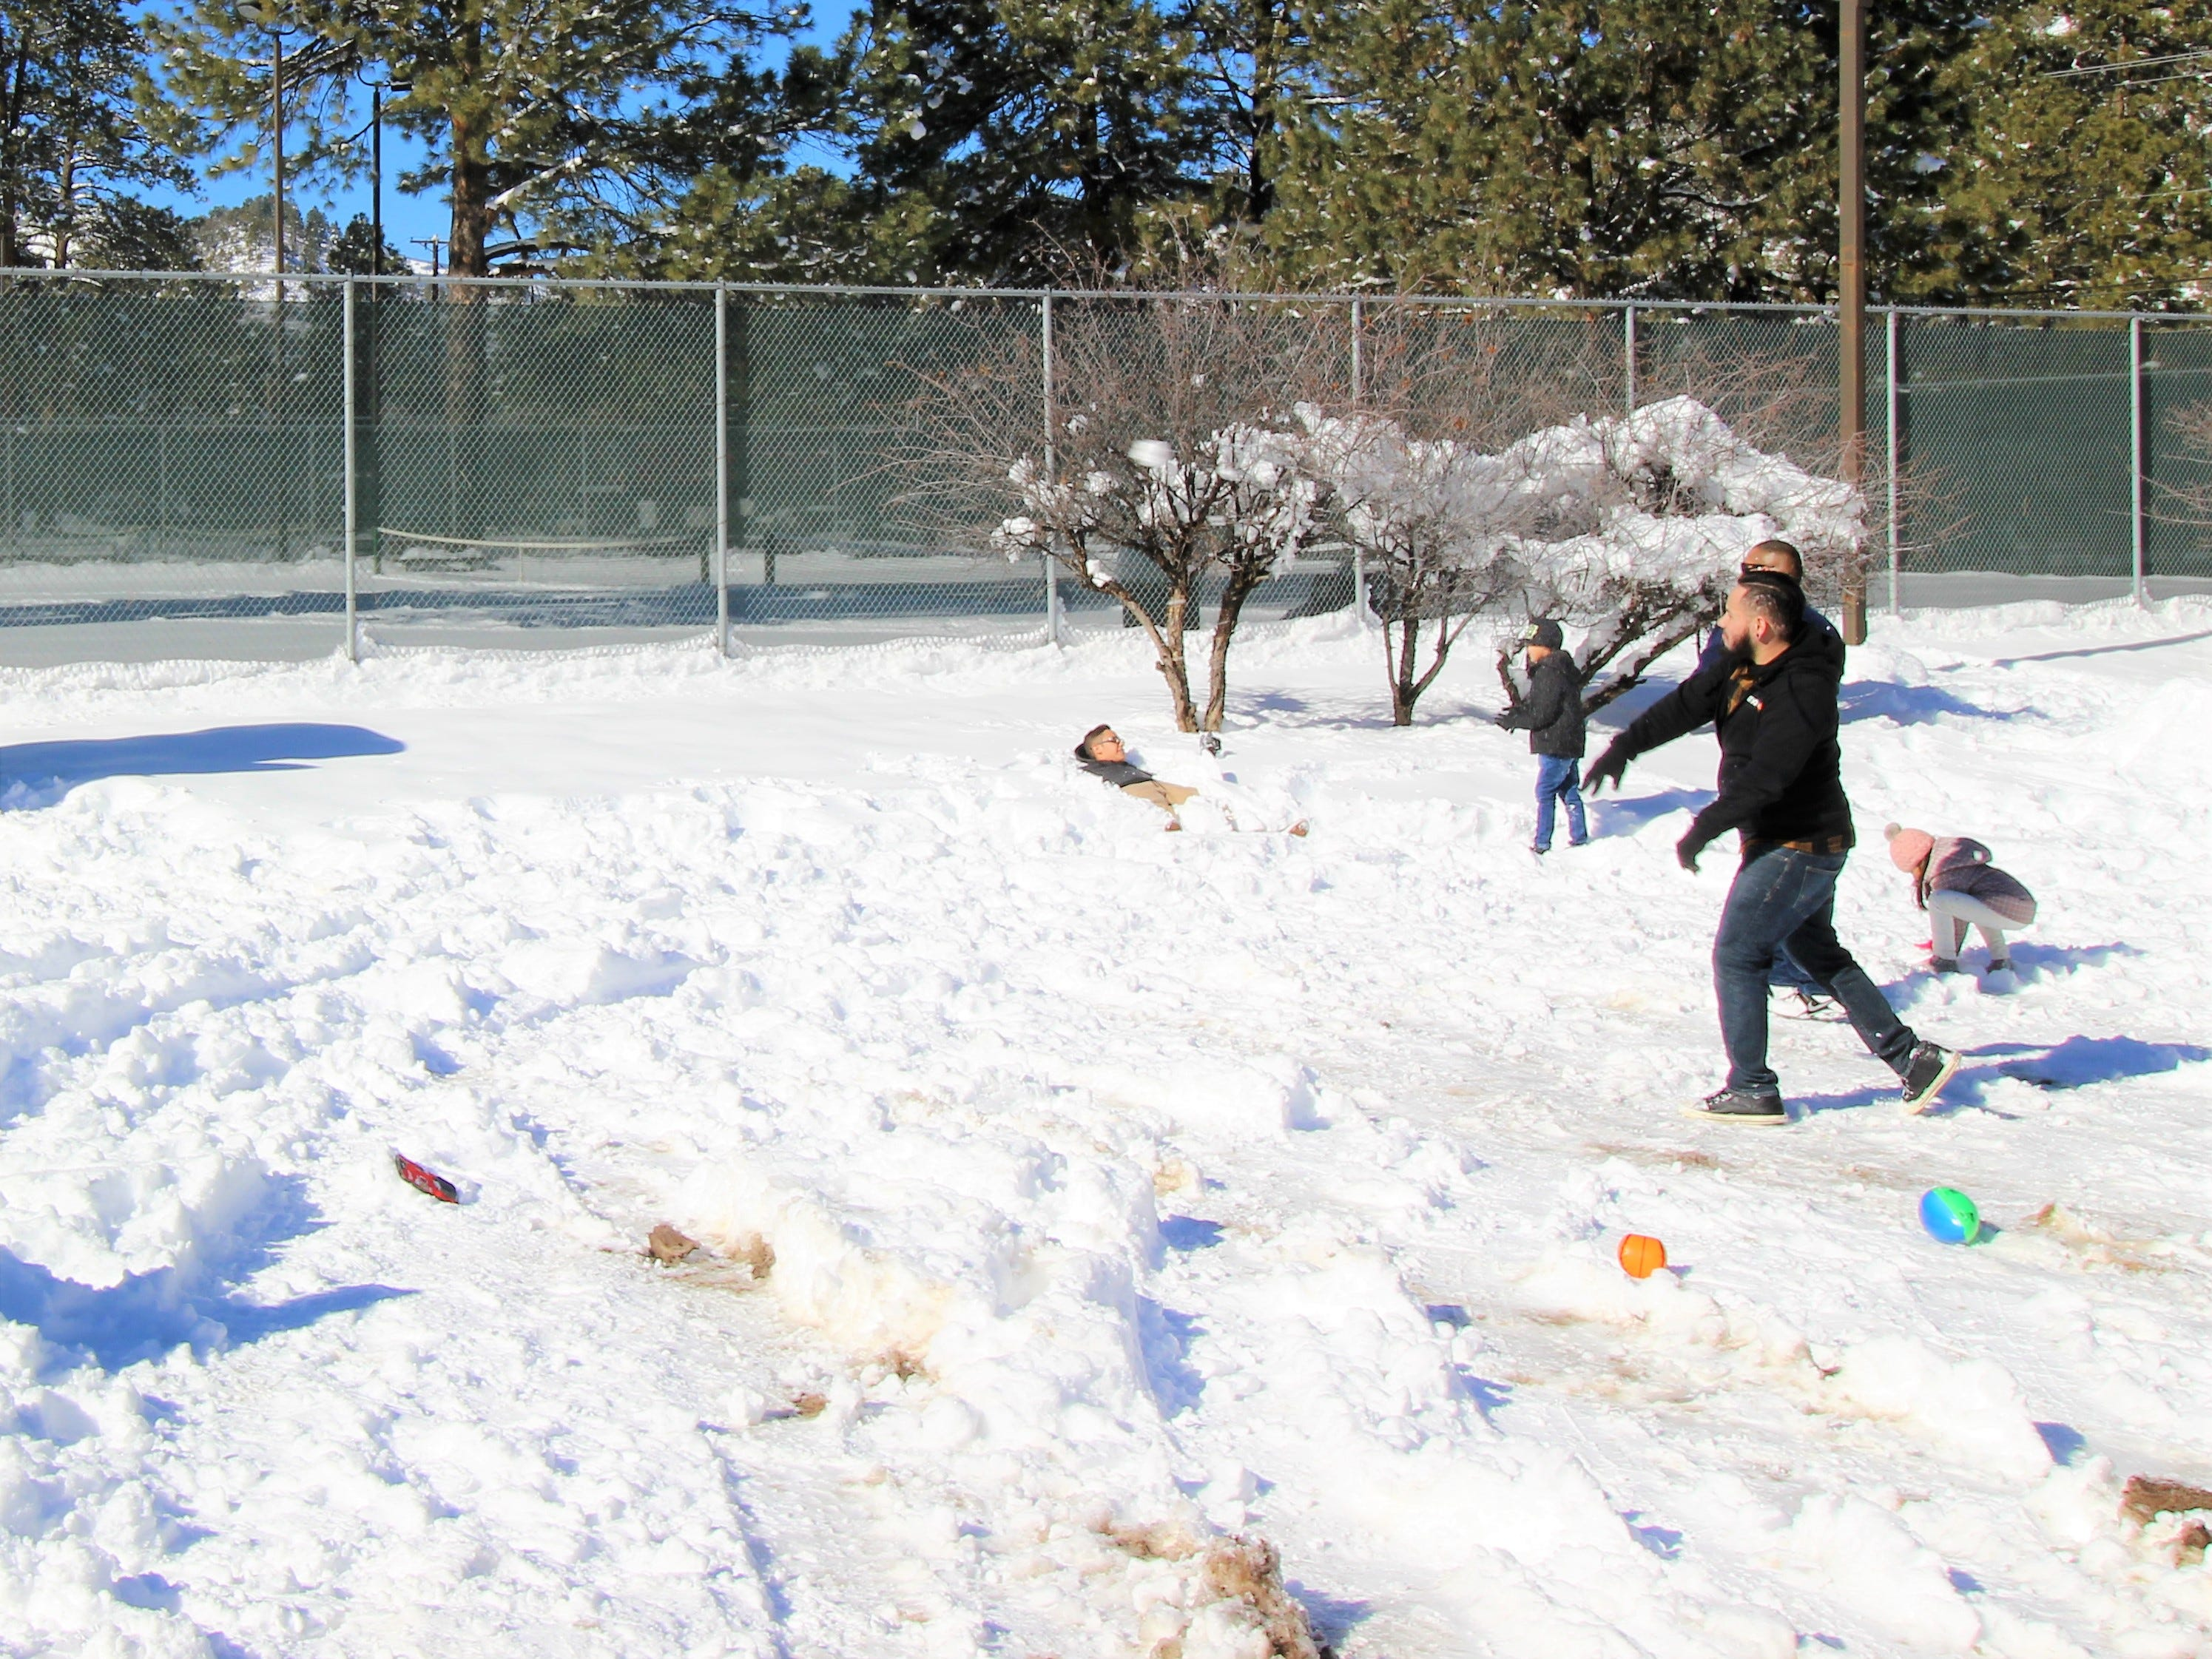 A family from Texas stops by School House Park to have a snow ball fight and bury a friend up to his neck in snow after the Village received over two feet of snow.